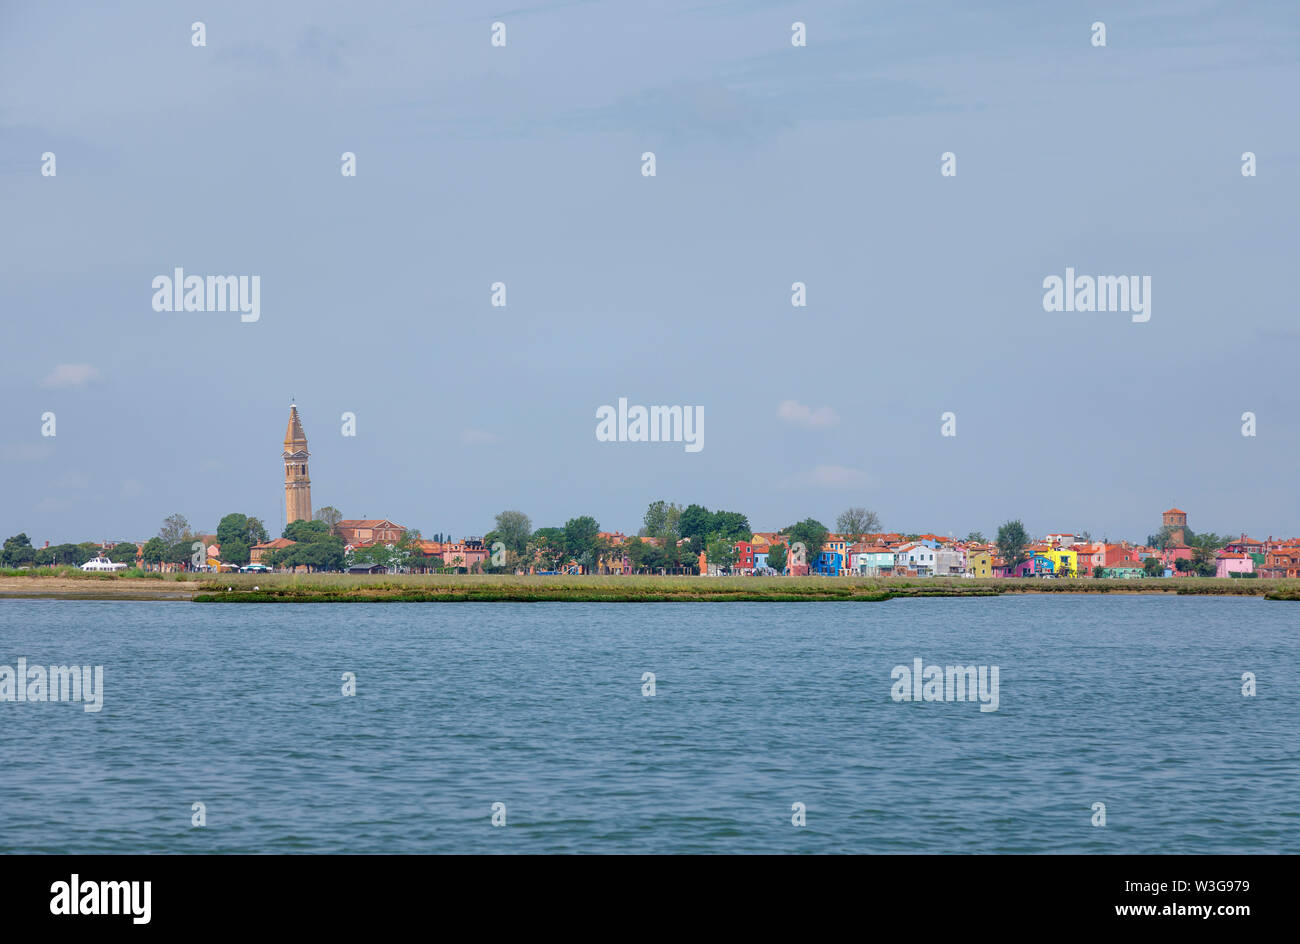 View of Burano, a small island in Venice Lagoon, Italy with the leaning campanile of the Church of San Martino on the skyline and coloured houses - Stock Image